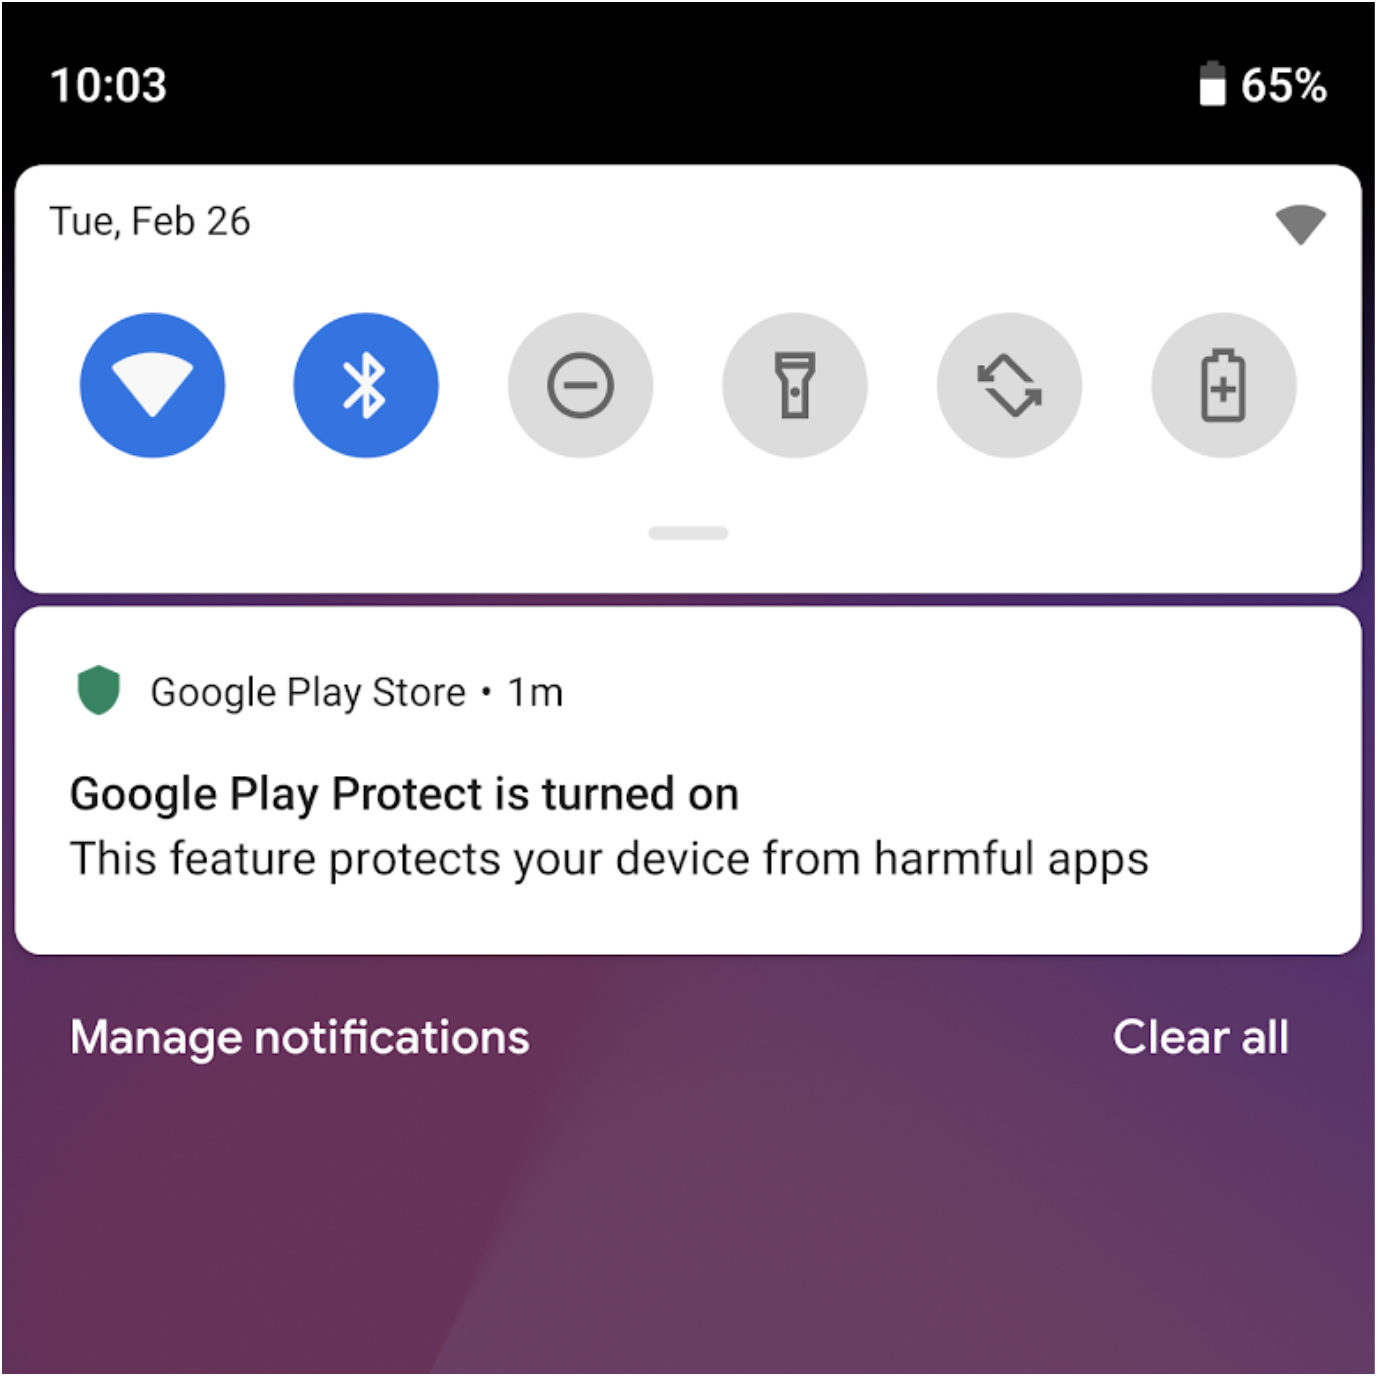 Android Developers Blog: Google Play Protect in 2018: New updates to